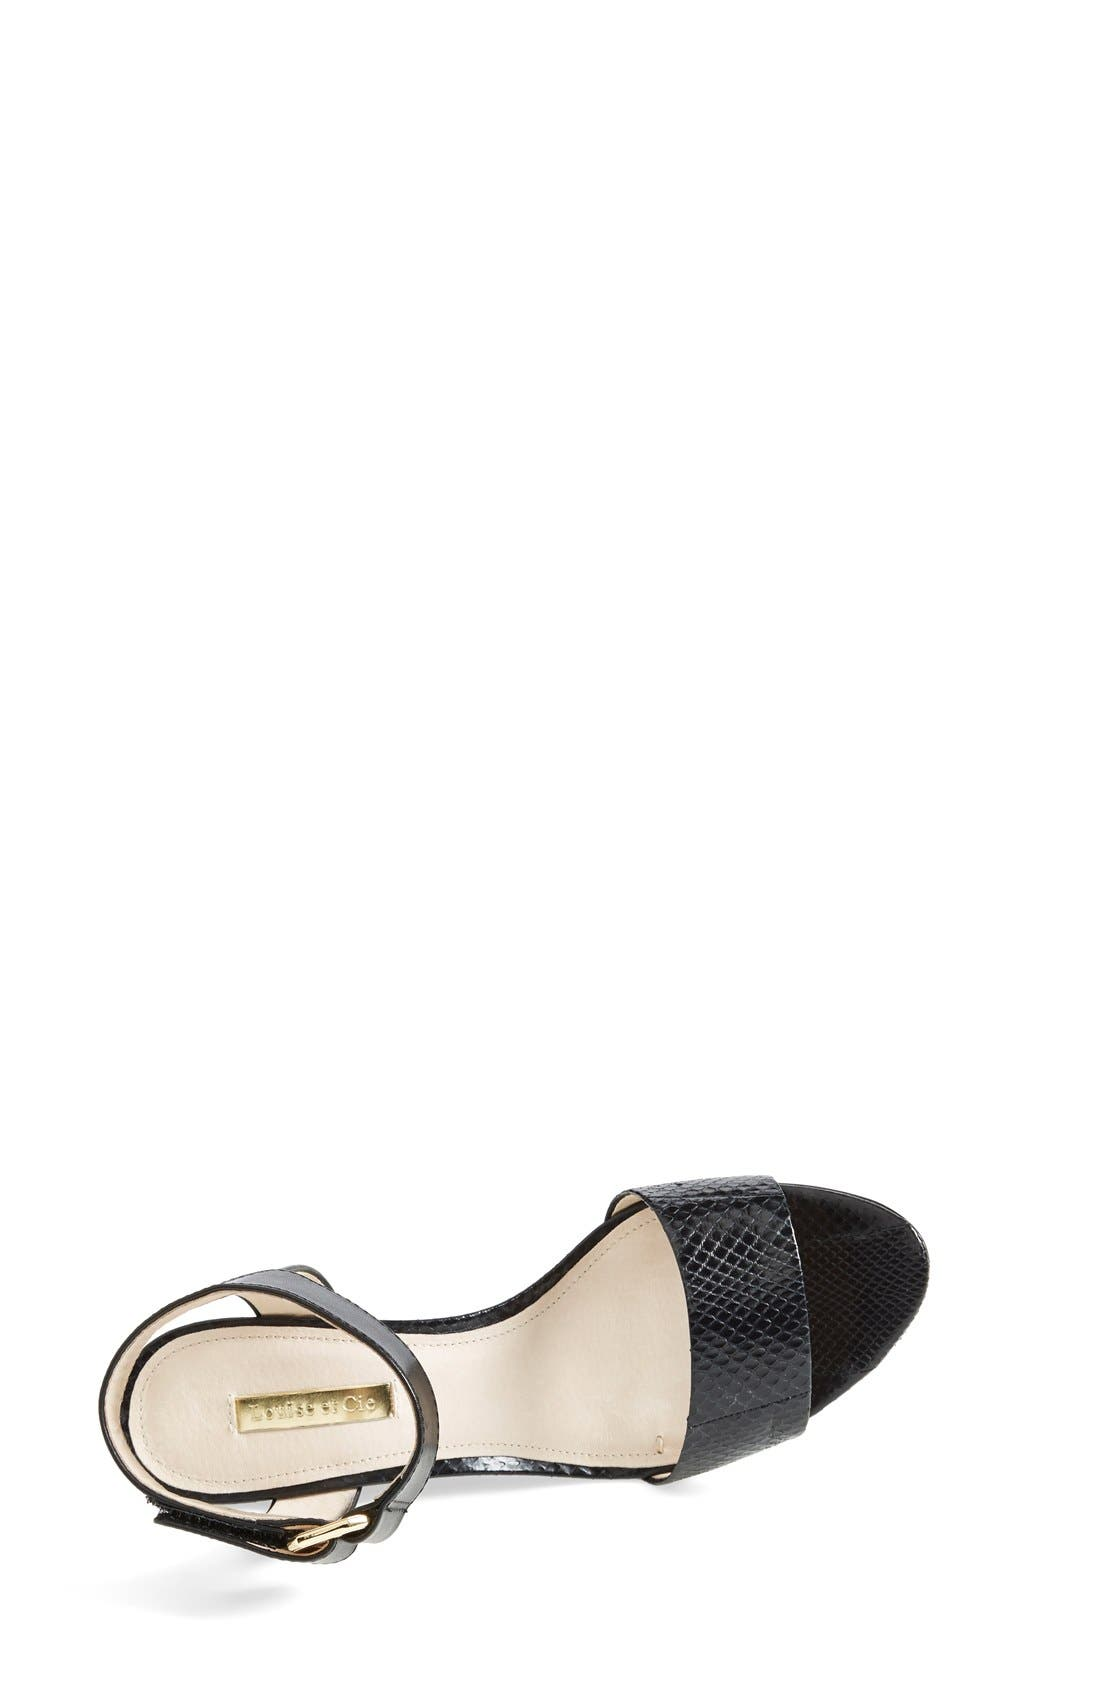 Alternate Image 3  - Louise et Cie 'Phiona' Leather Ankle Strap Wedge Sandal (Women)